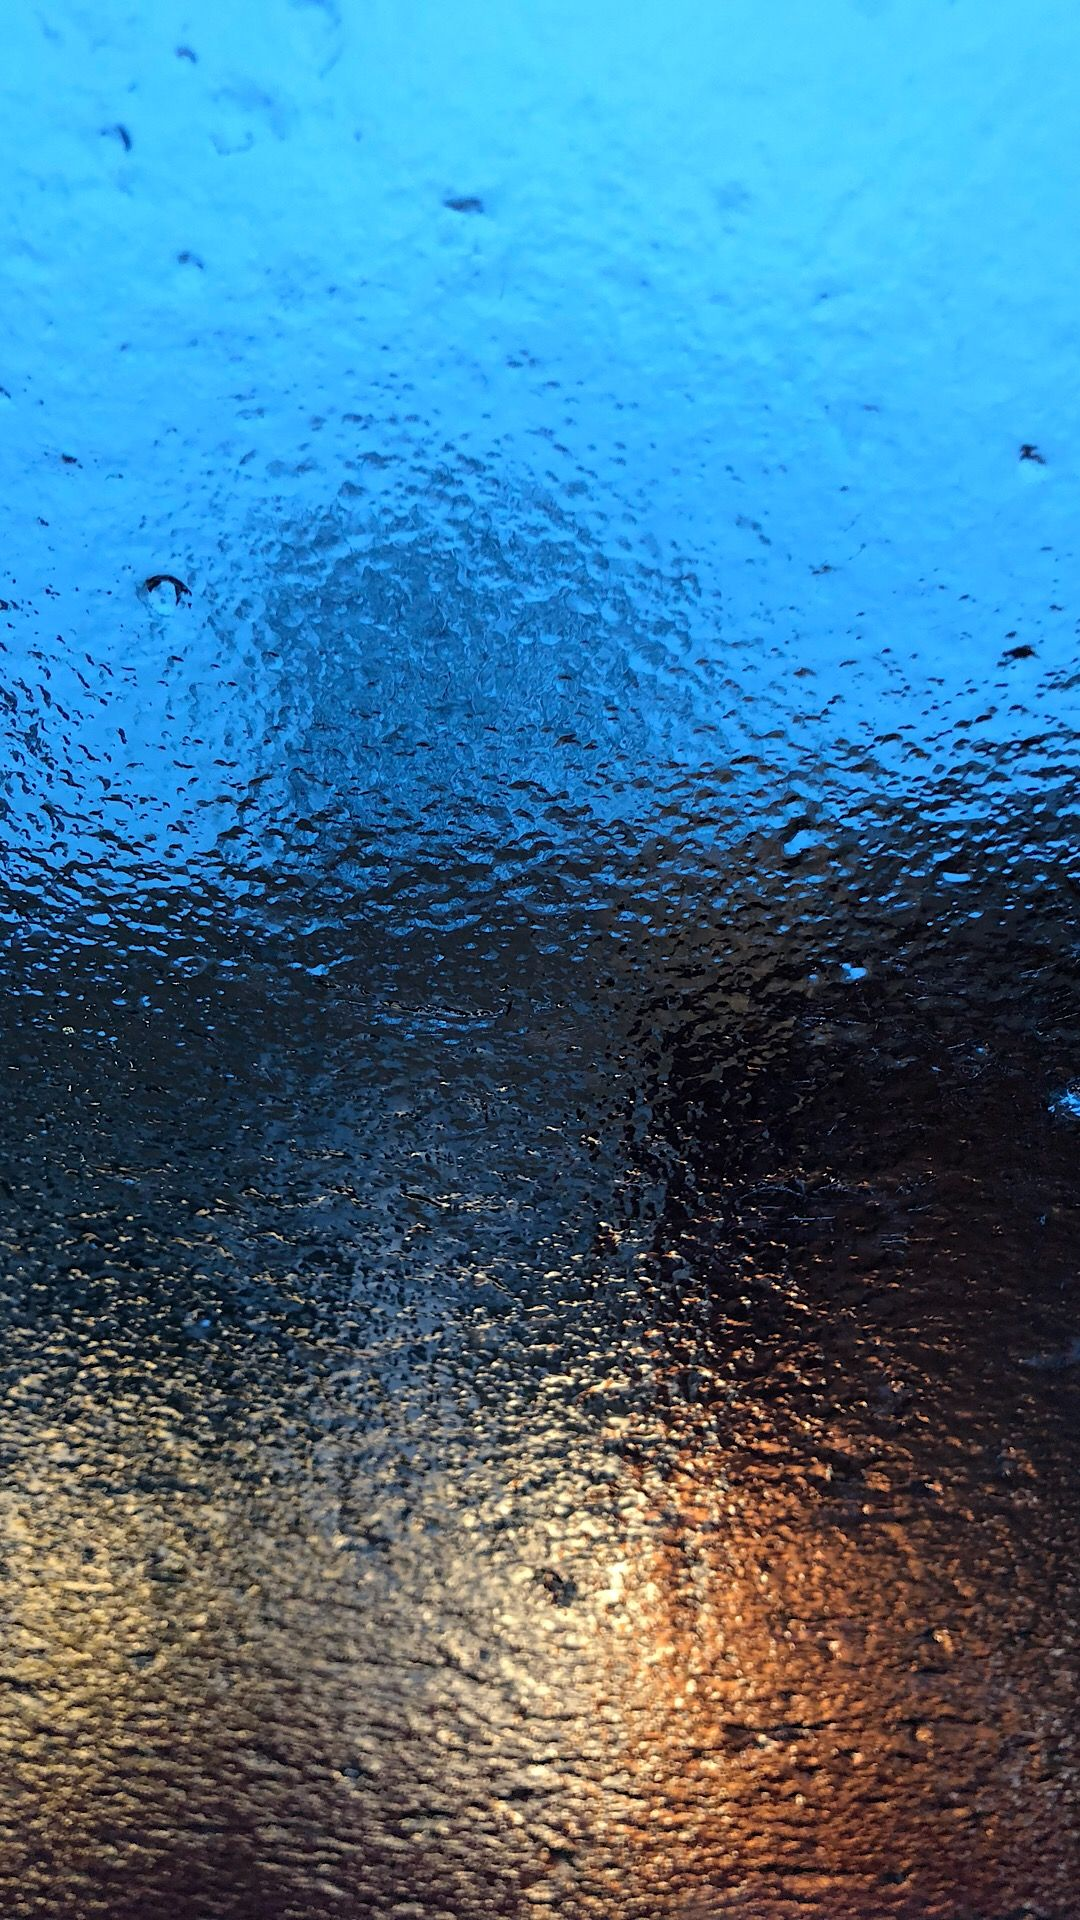 Frozen Windshield For Iphone 8 Plus Wallpaper Color Wallpaper Iphone Beautiful Backgrounds Photo Backgrounds